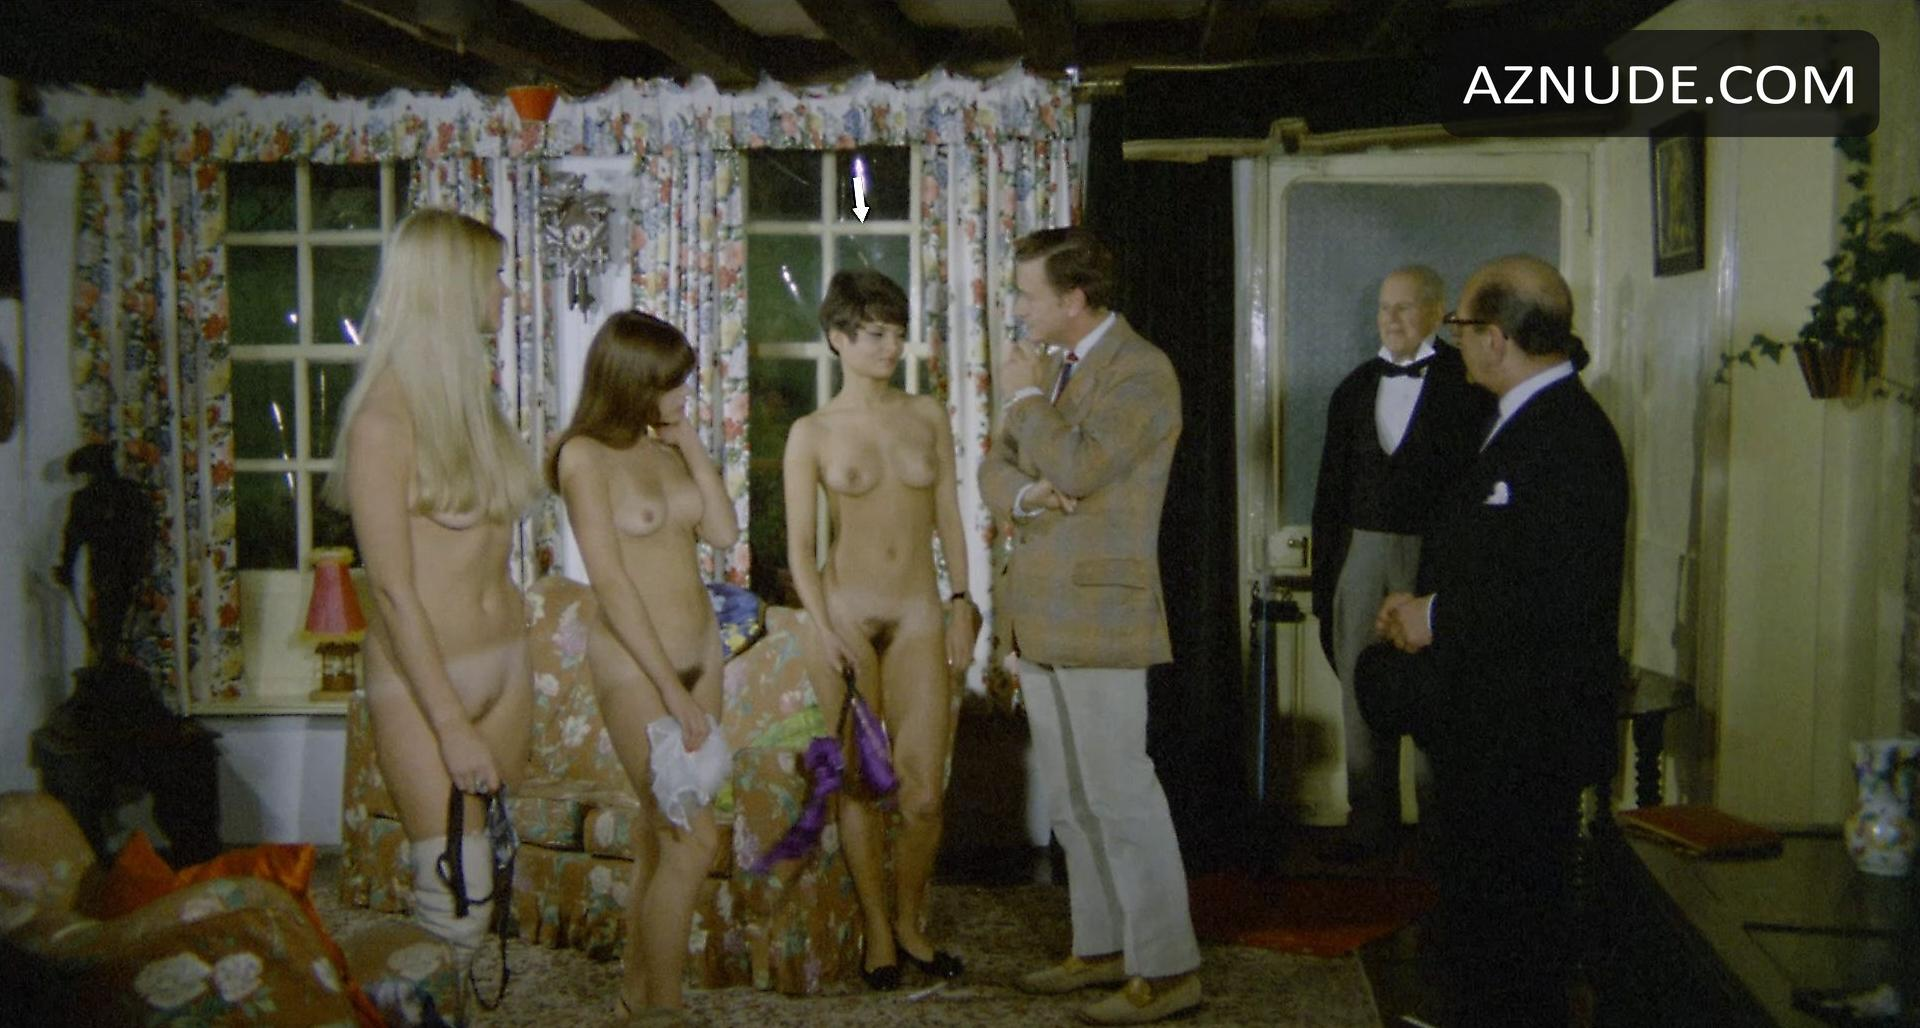 Francoise pascal nude burke and hare